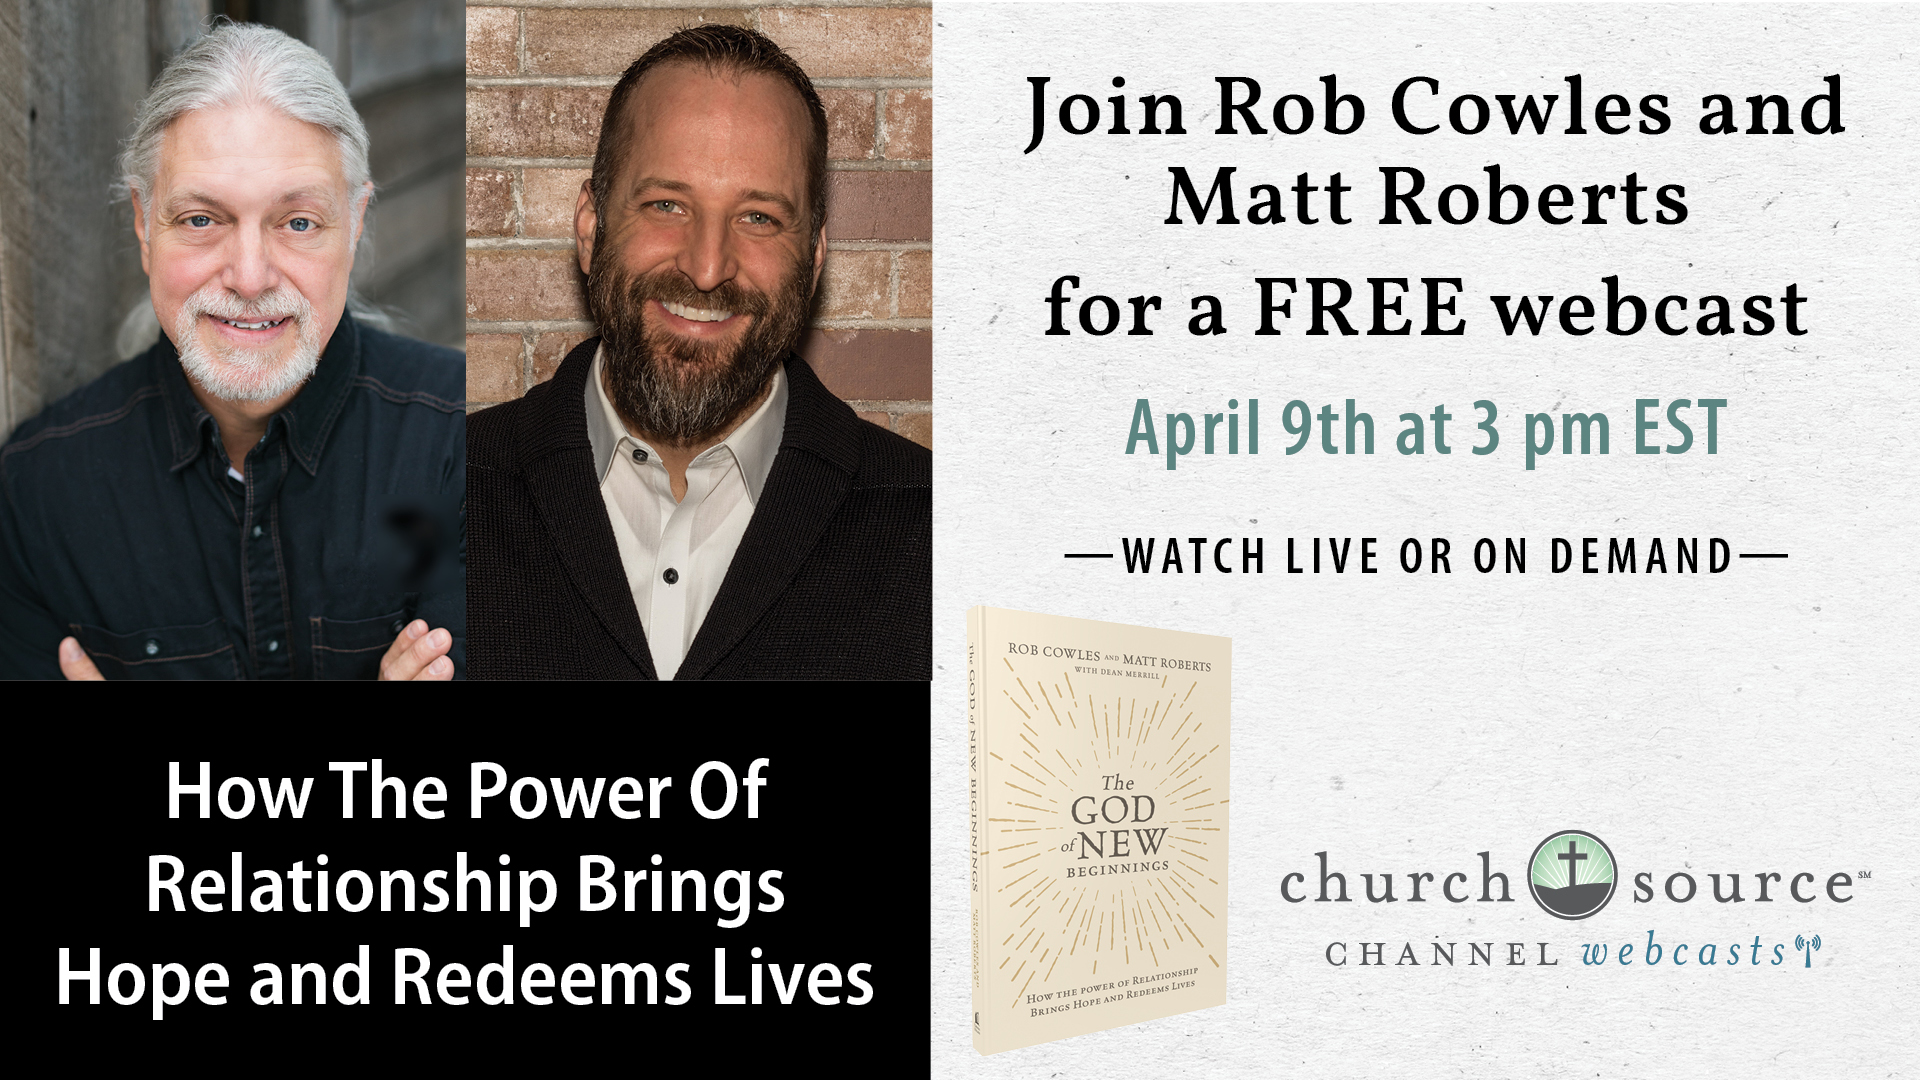 How The Power of Relationship Brings Hope and Redeems Lives - Webcast with Rob Cowles and Matt Roberts